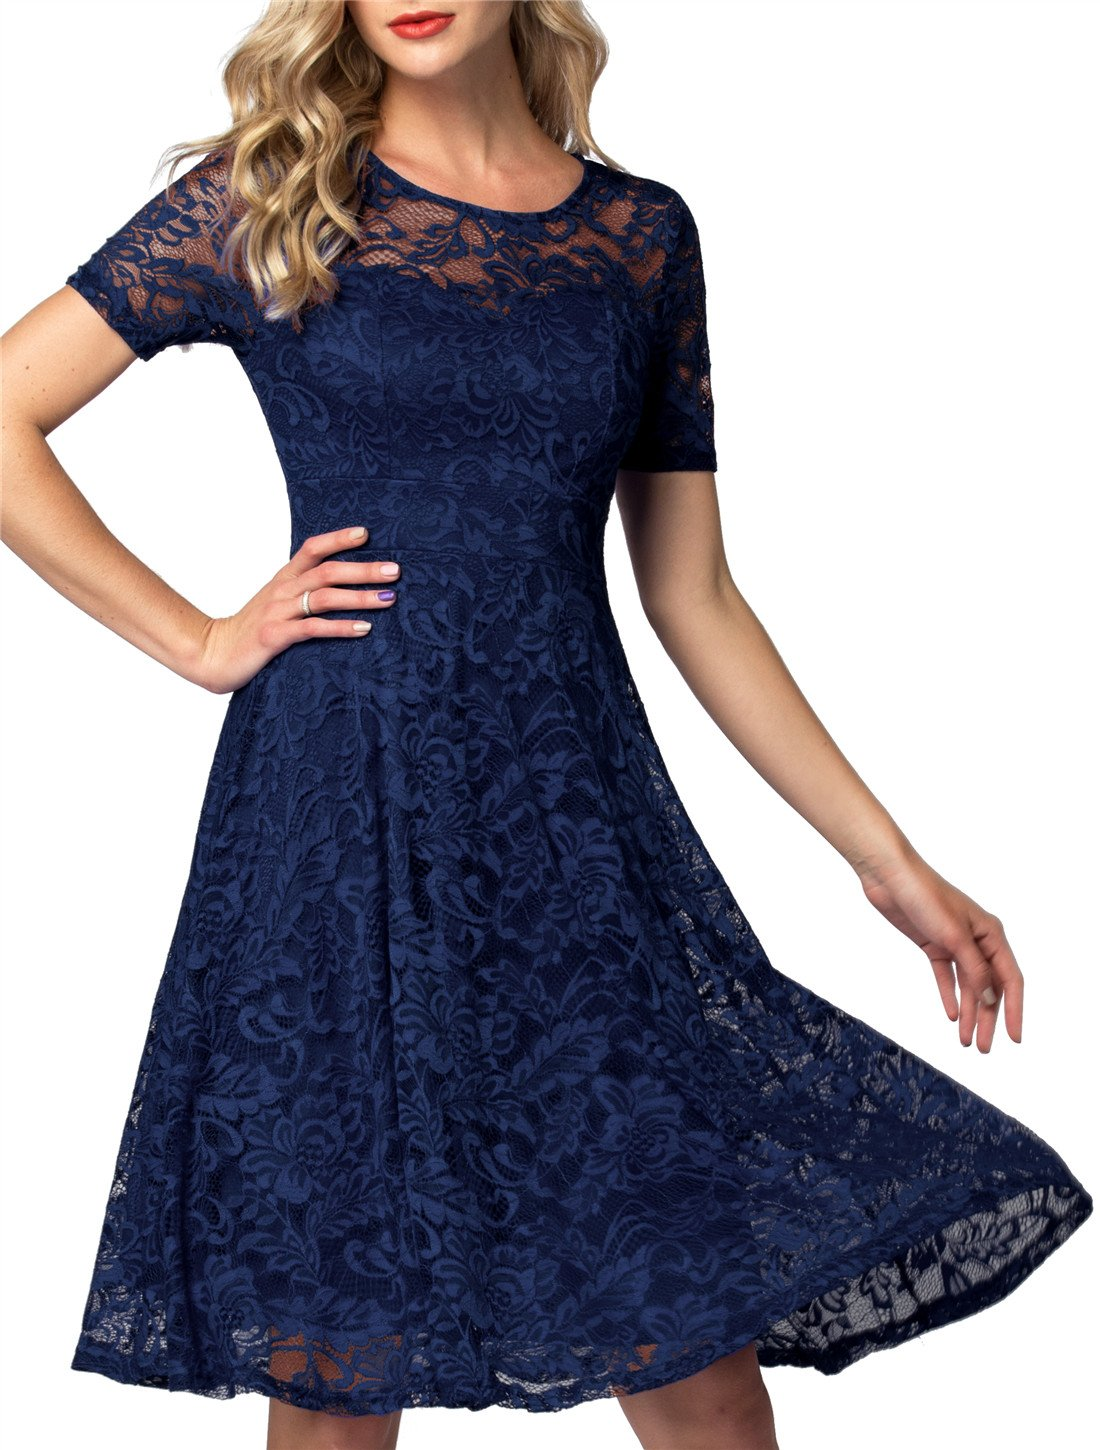 AONOUR AR8006 Women's Vintage Floral Lace Elegant Cocktail Formal Swing Dress with Short Sleeve Navy XL